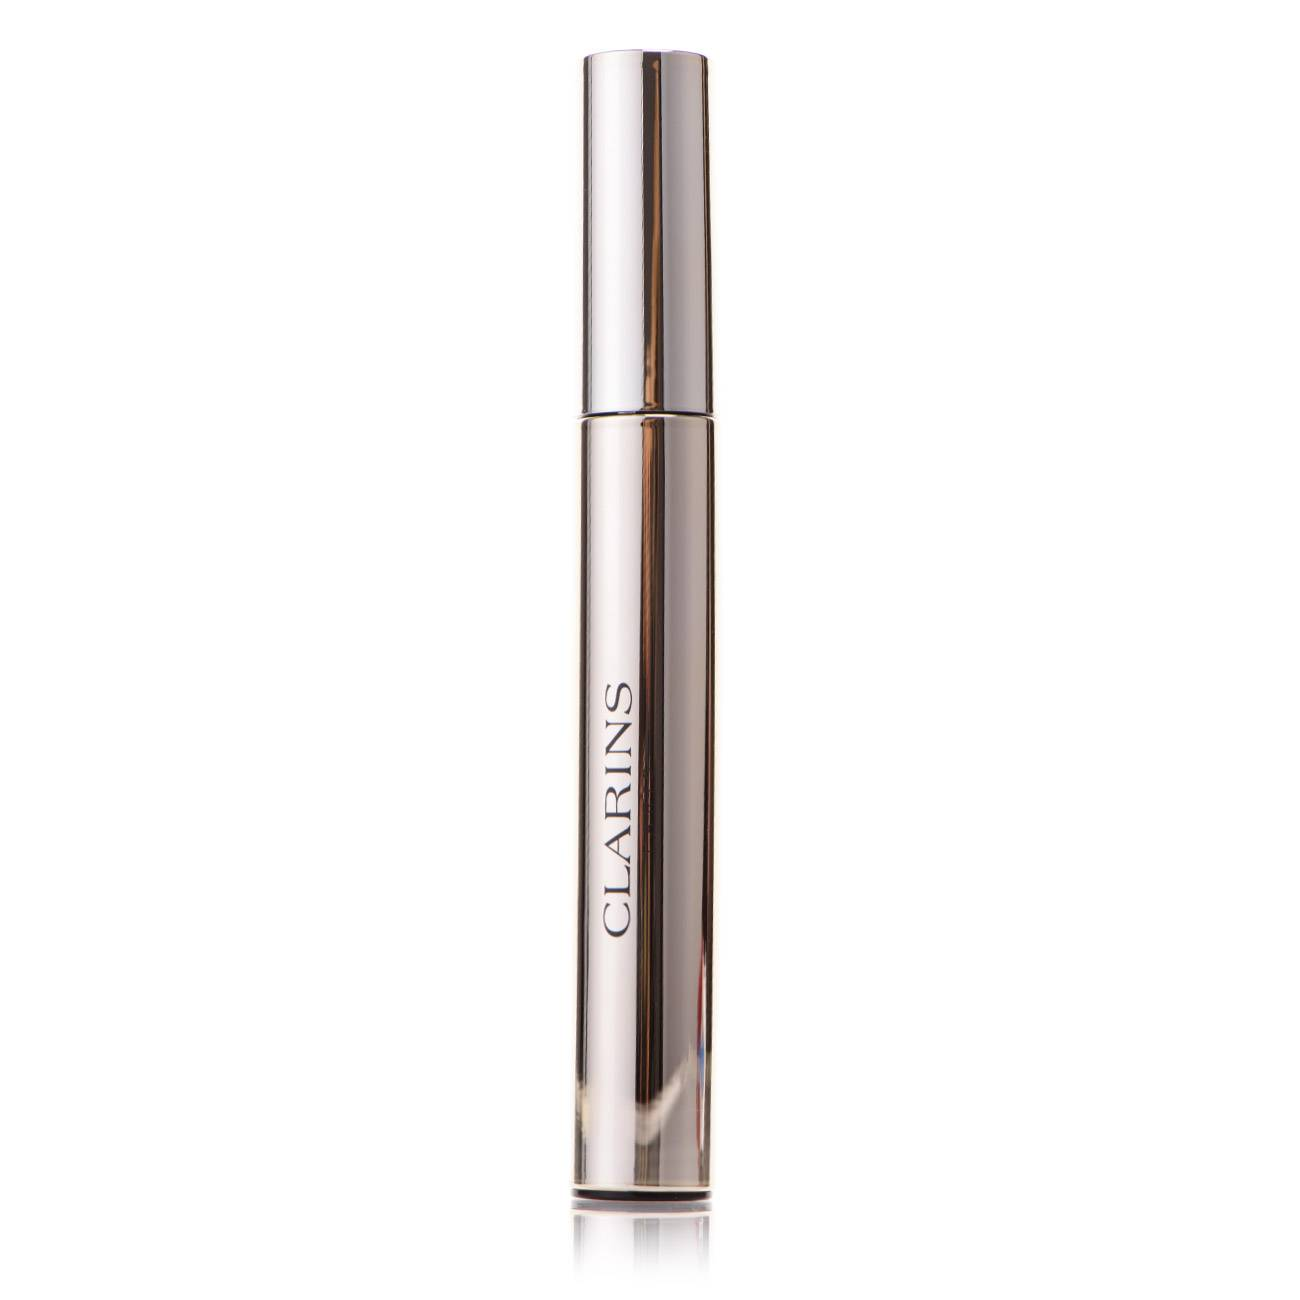 MASCARA SUPRA VOLUME 01 7 ML 7 Ml imagine produs